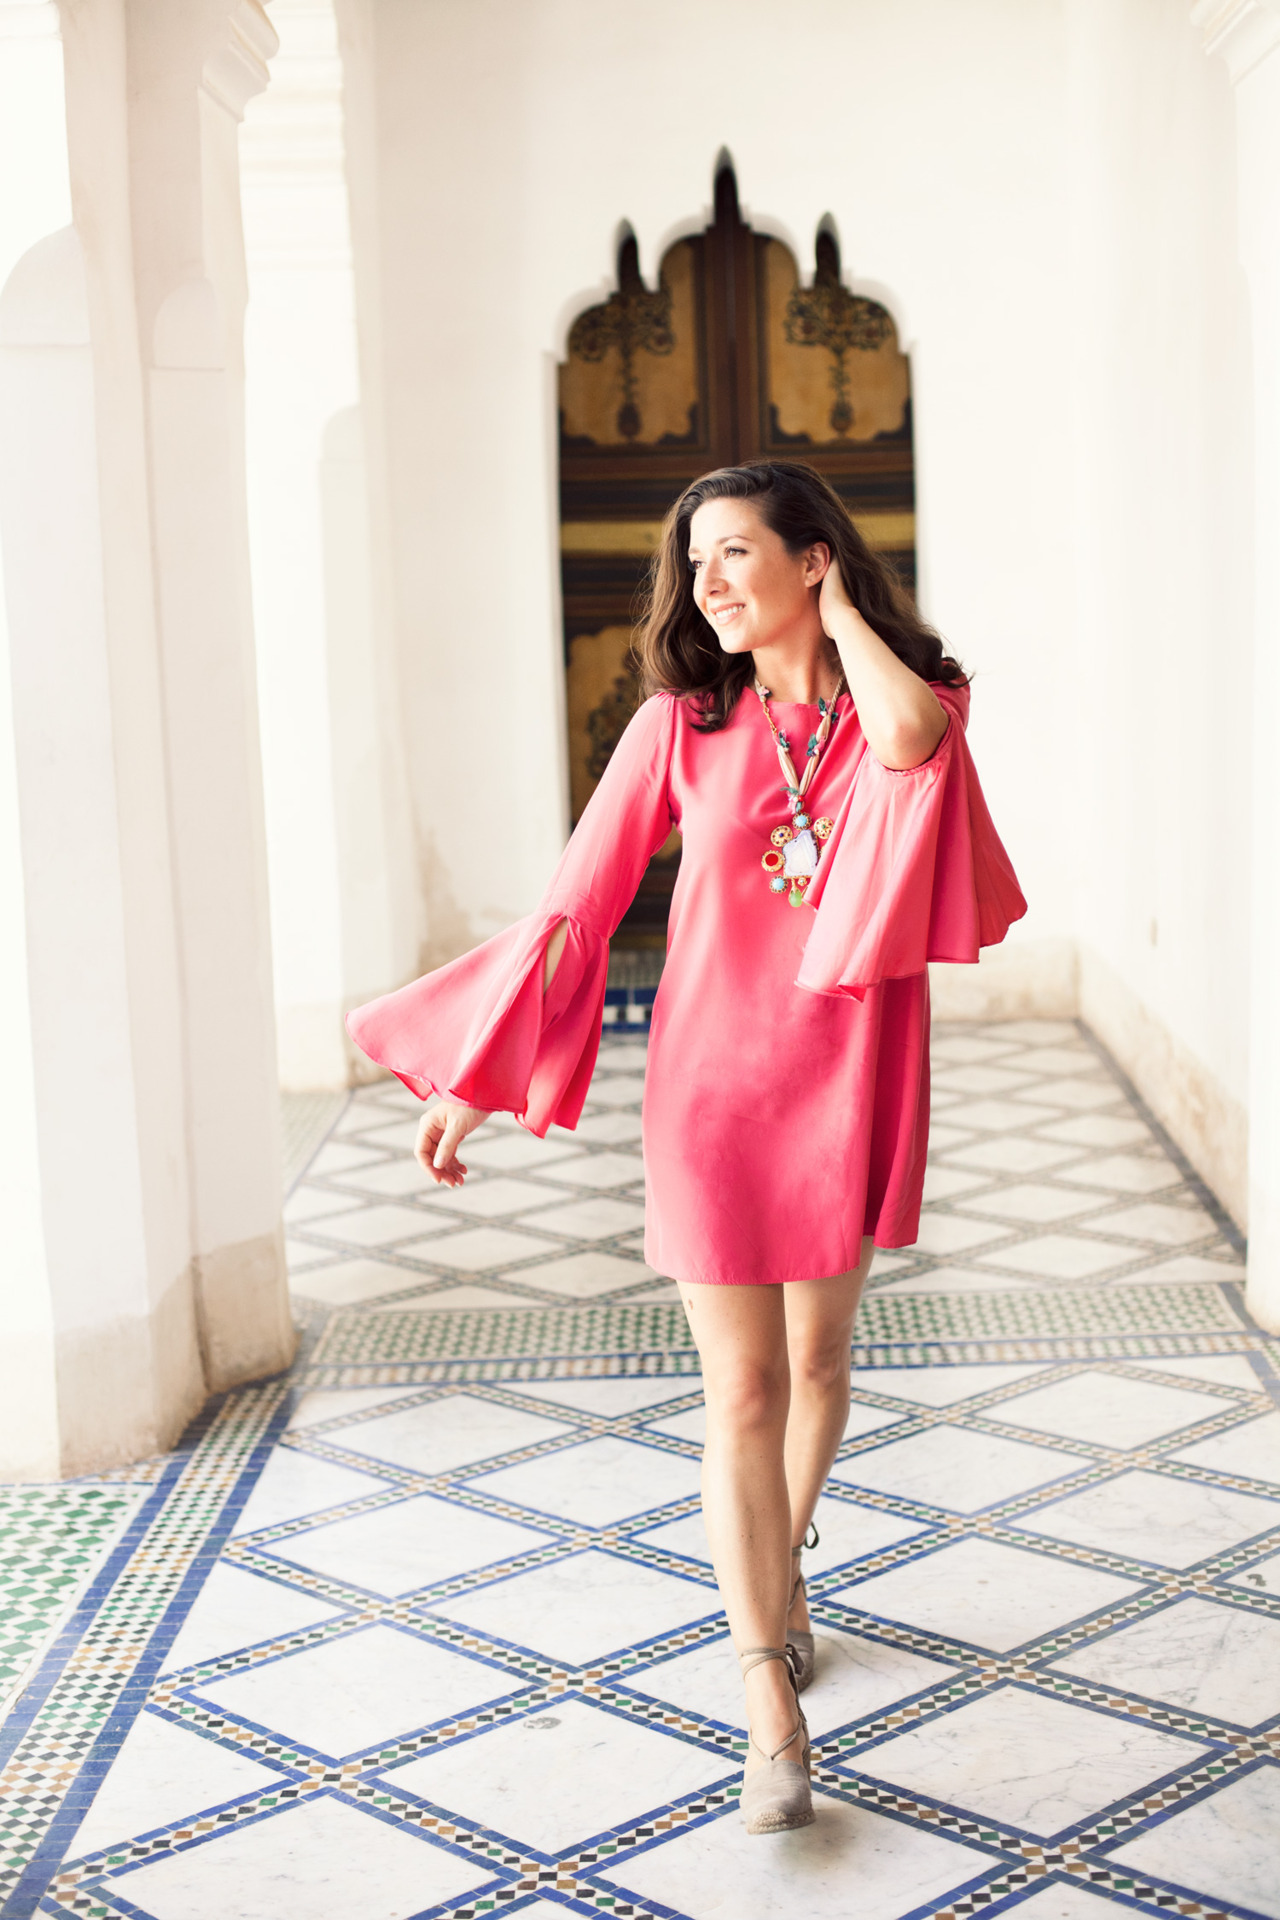 fromme-toyou:  Royal Palaces & pink dresses, falling in love with Marrakech…